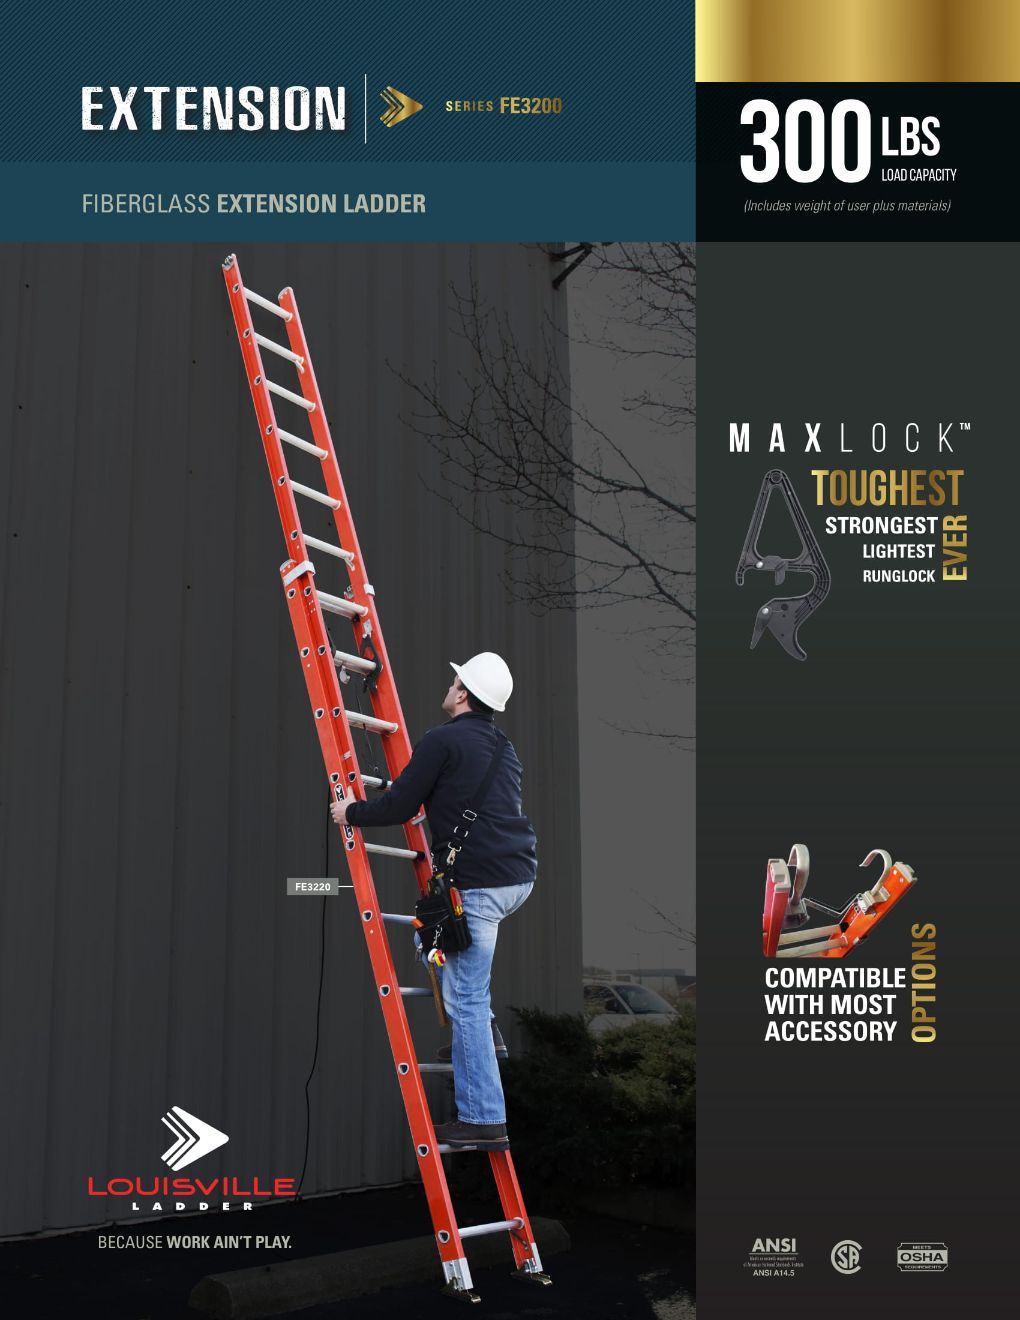 FE3200 Extension Ladder Flyer and Spec Sheet Marketing Material Image